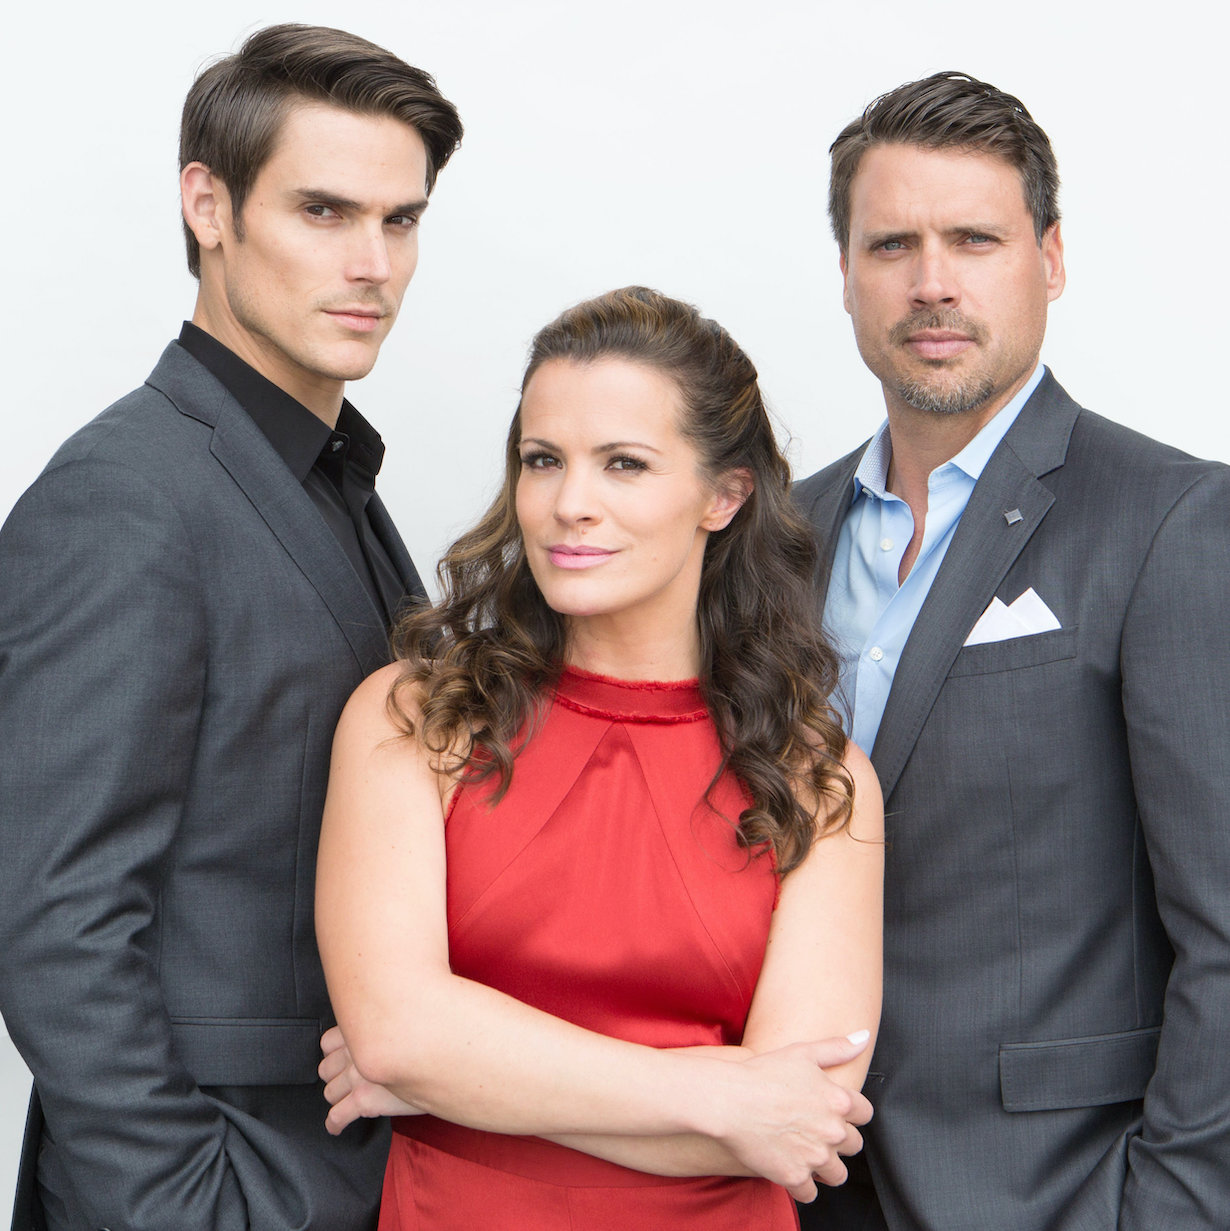 """Joshua Morrow, Melissa Claire Egan, Mark Grossman """"The Young and the Restless"""" Set adam nick chelsea"""